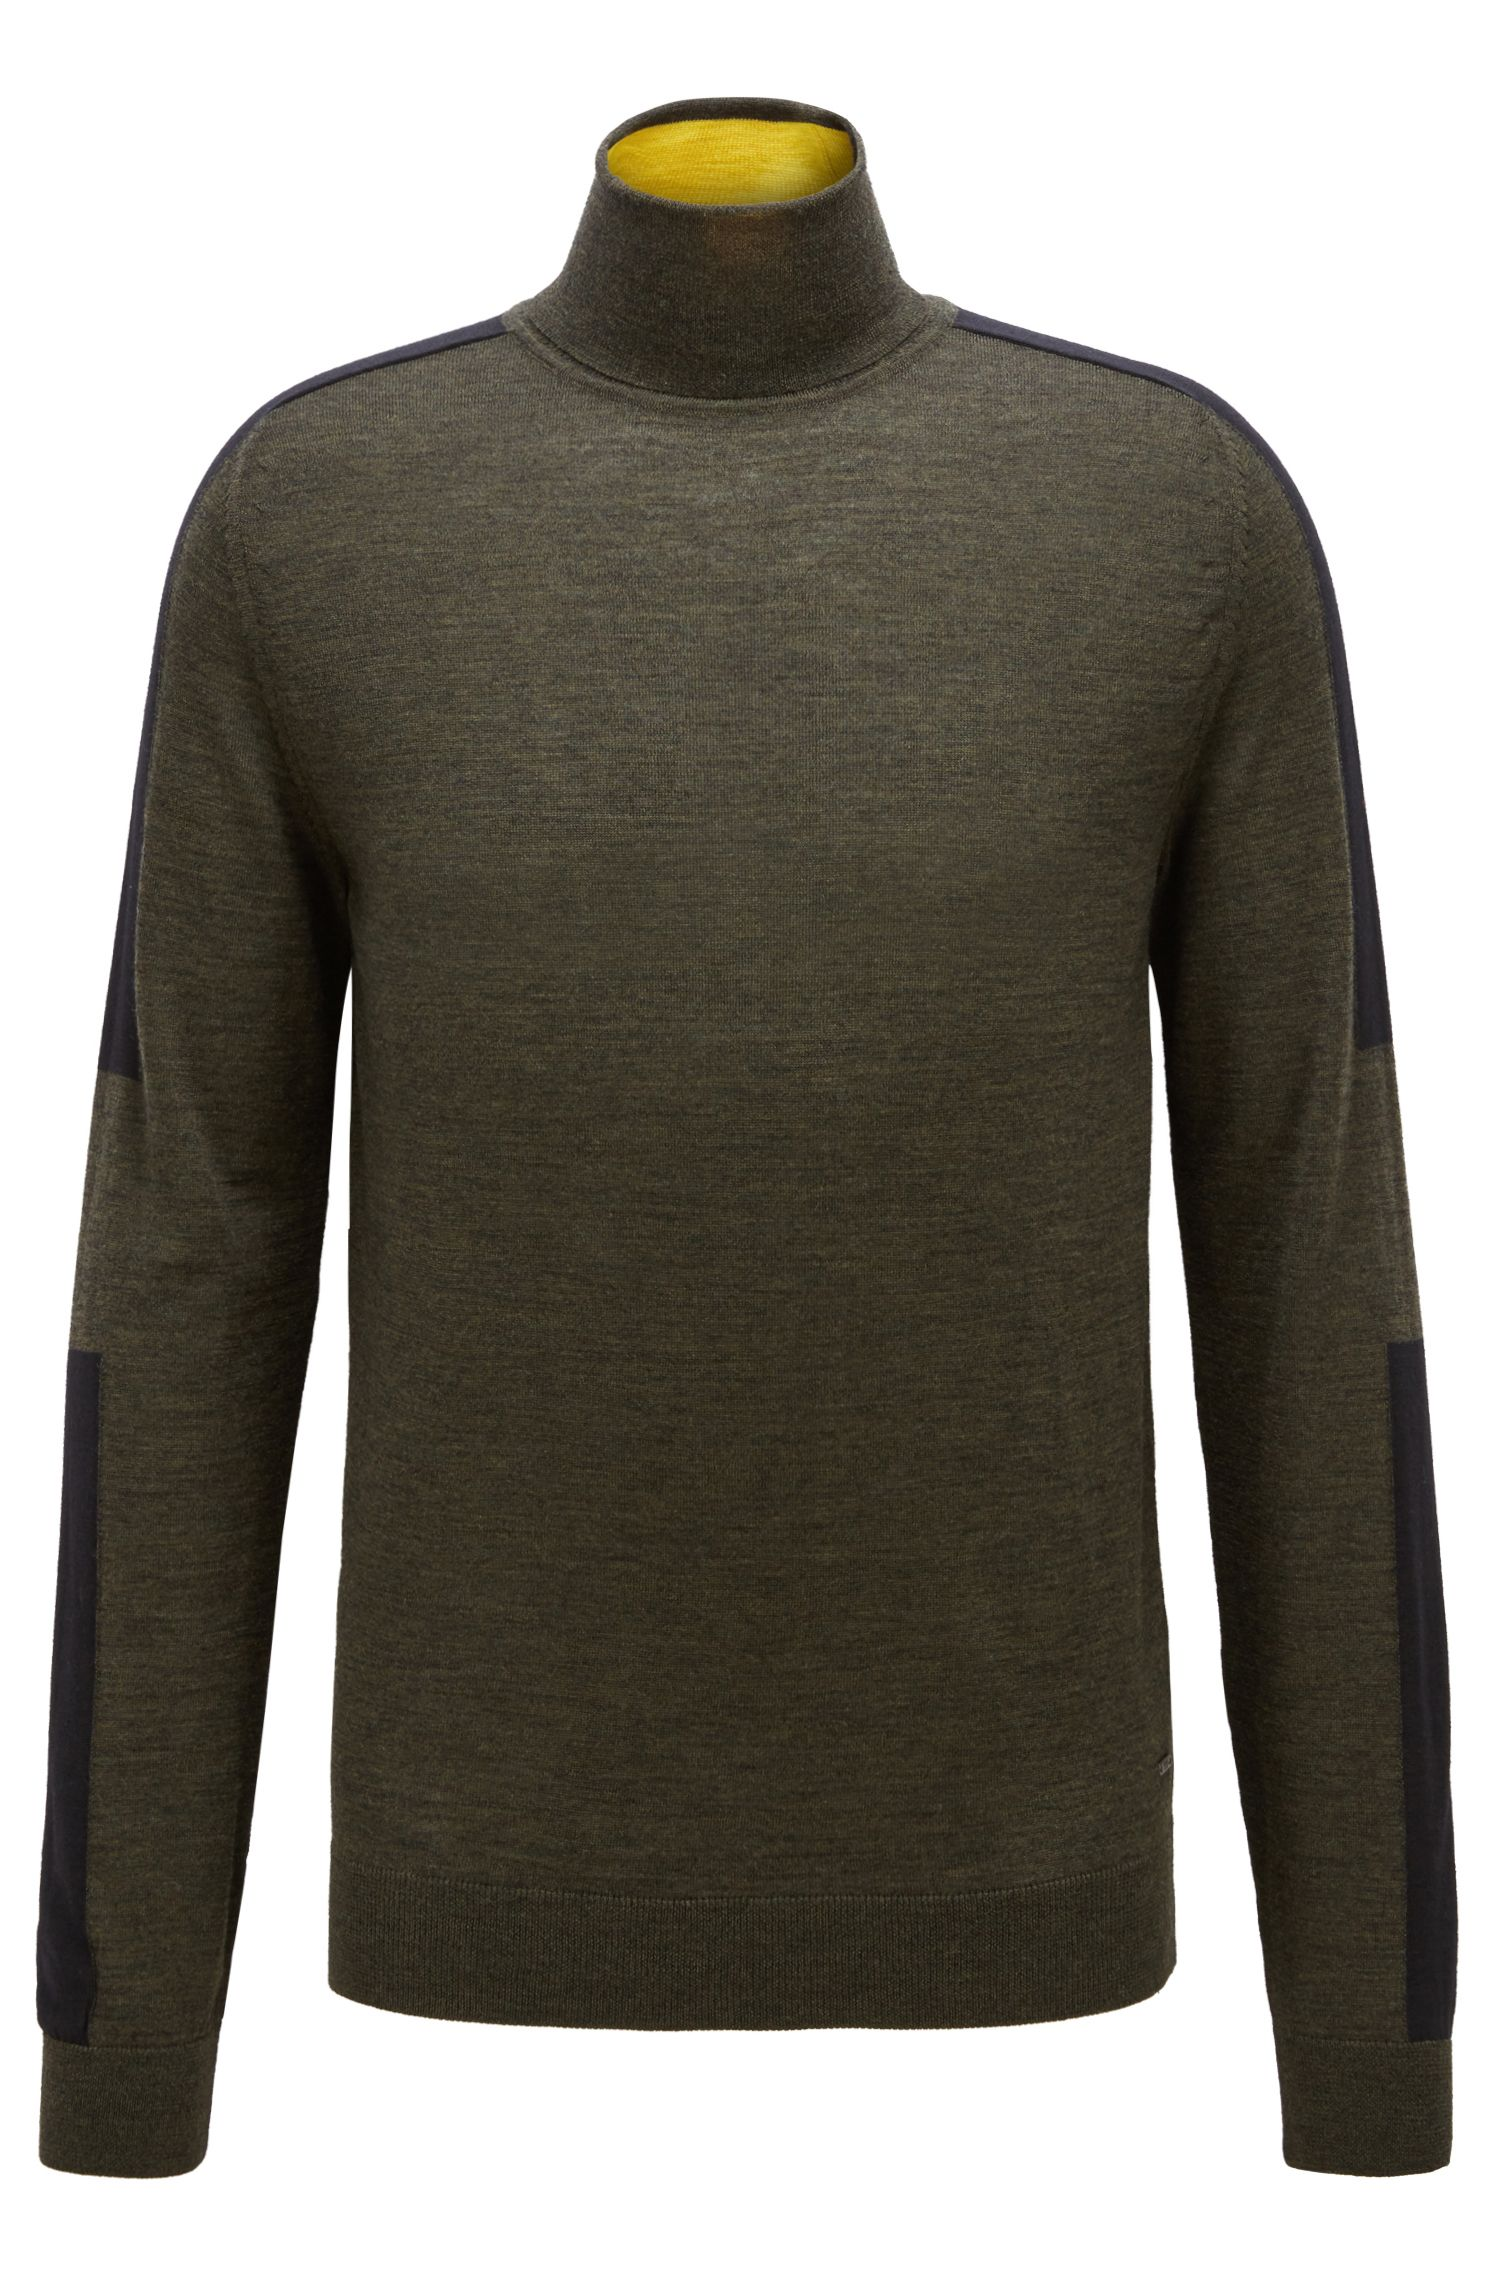 Turtleneck sweater in Italian merino wool with colour-blocking